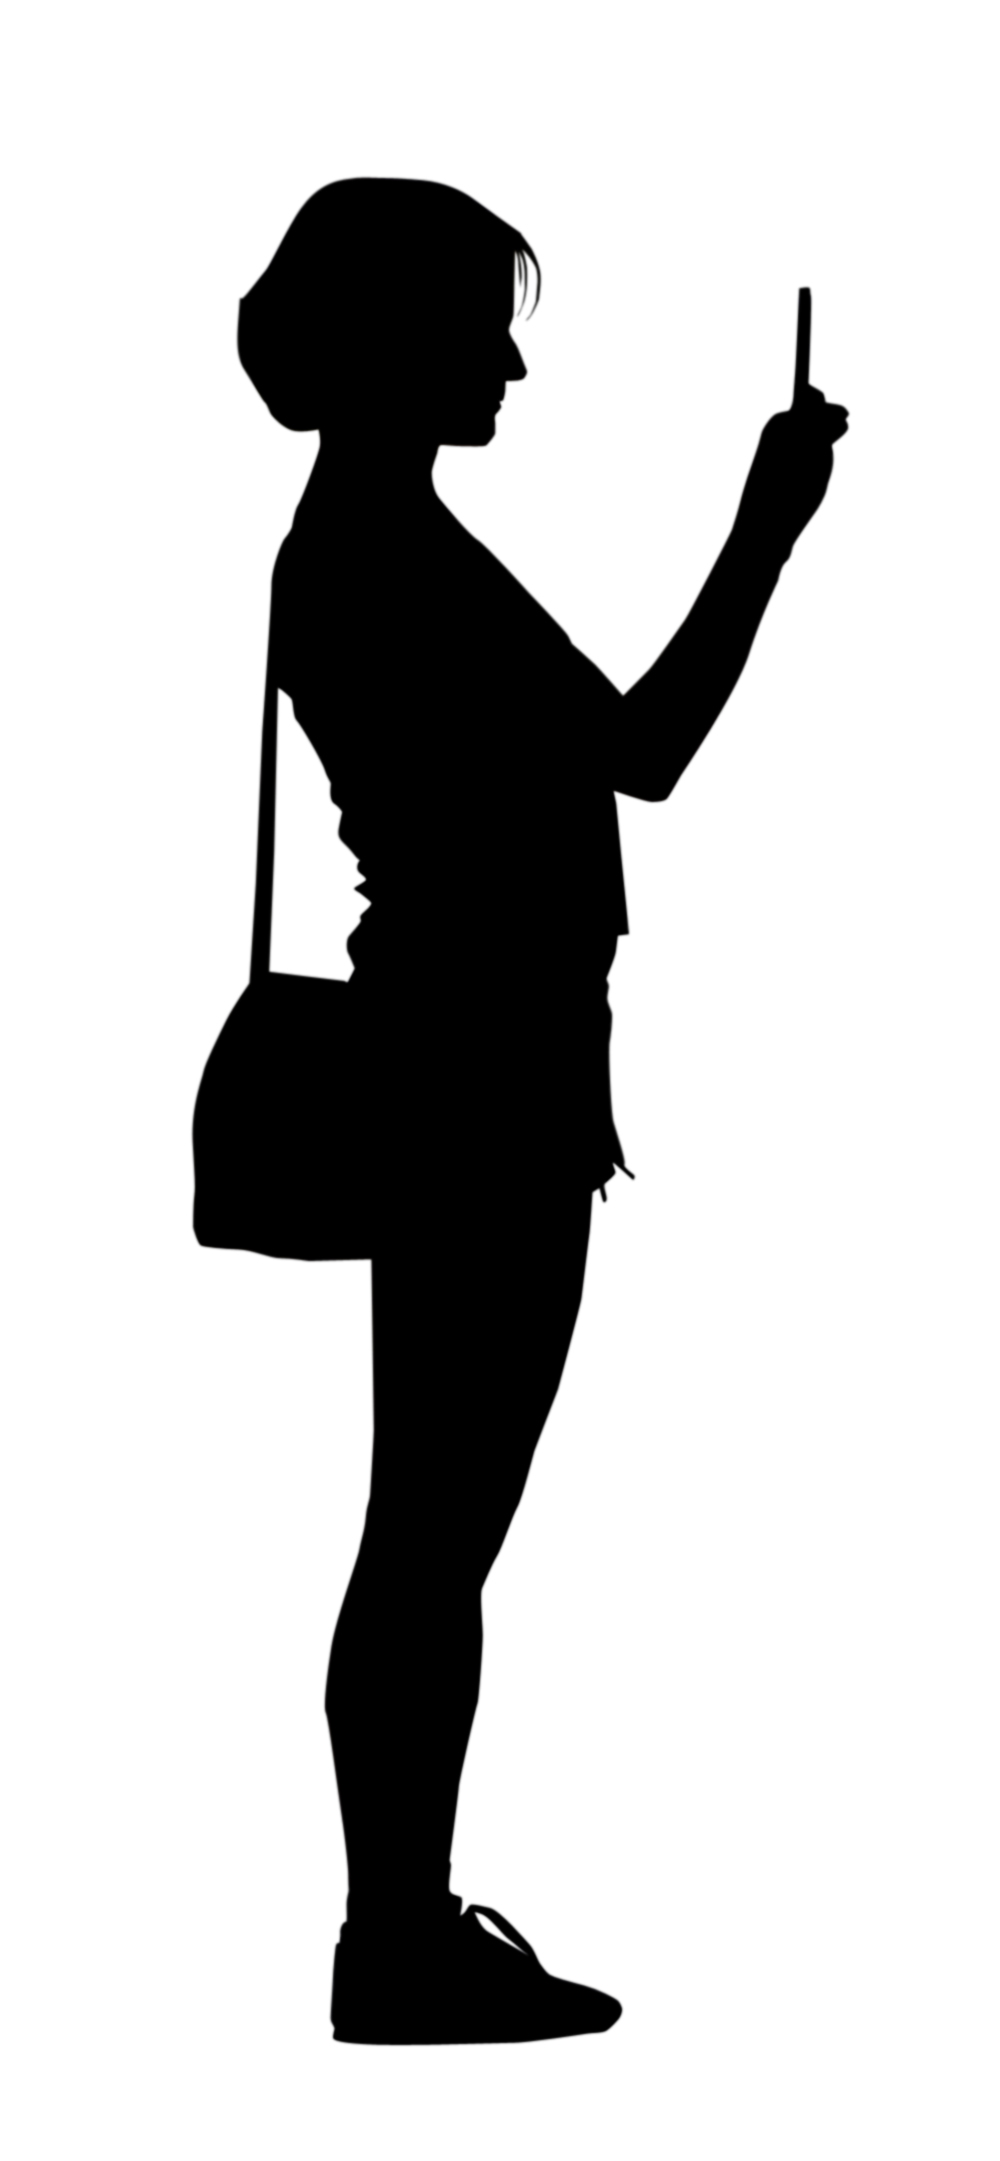 Mobile at getdrawings com. Cell clipart silhouette